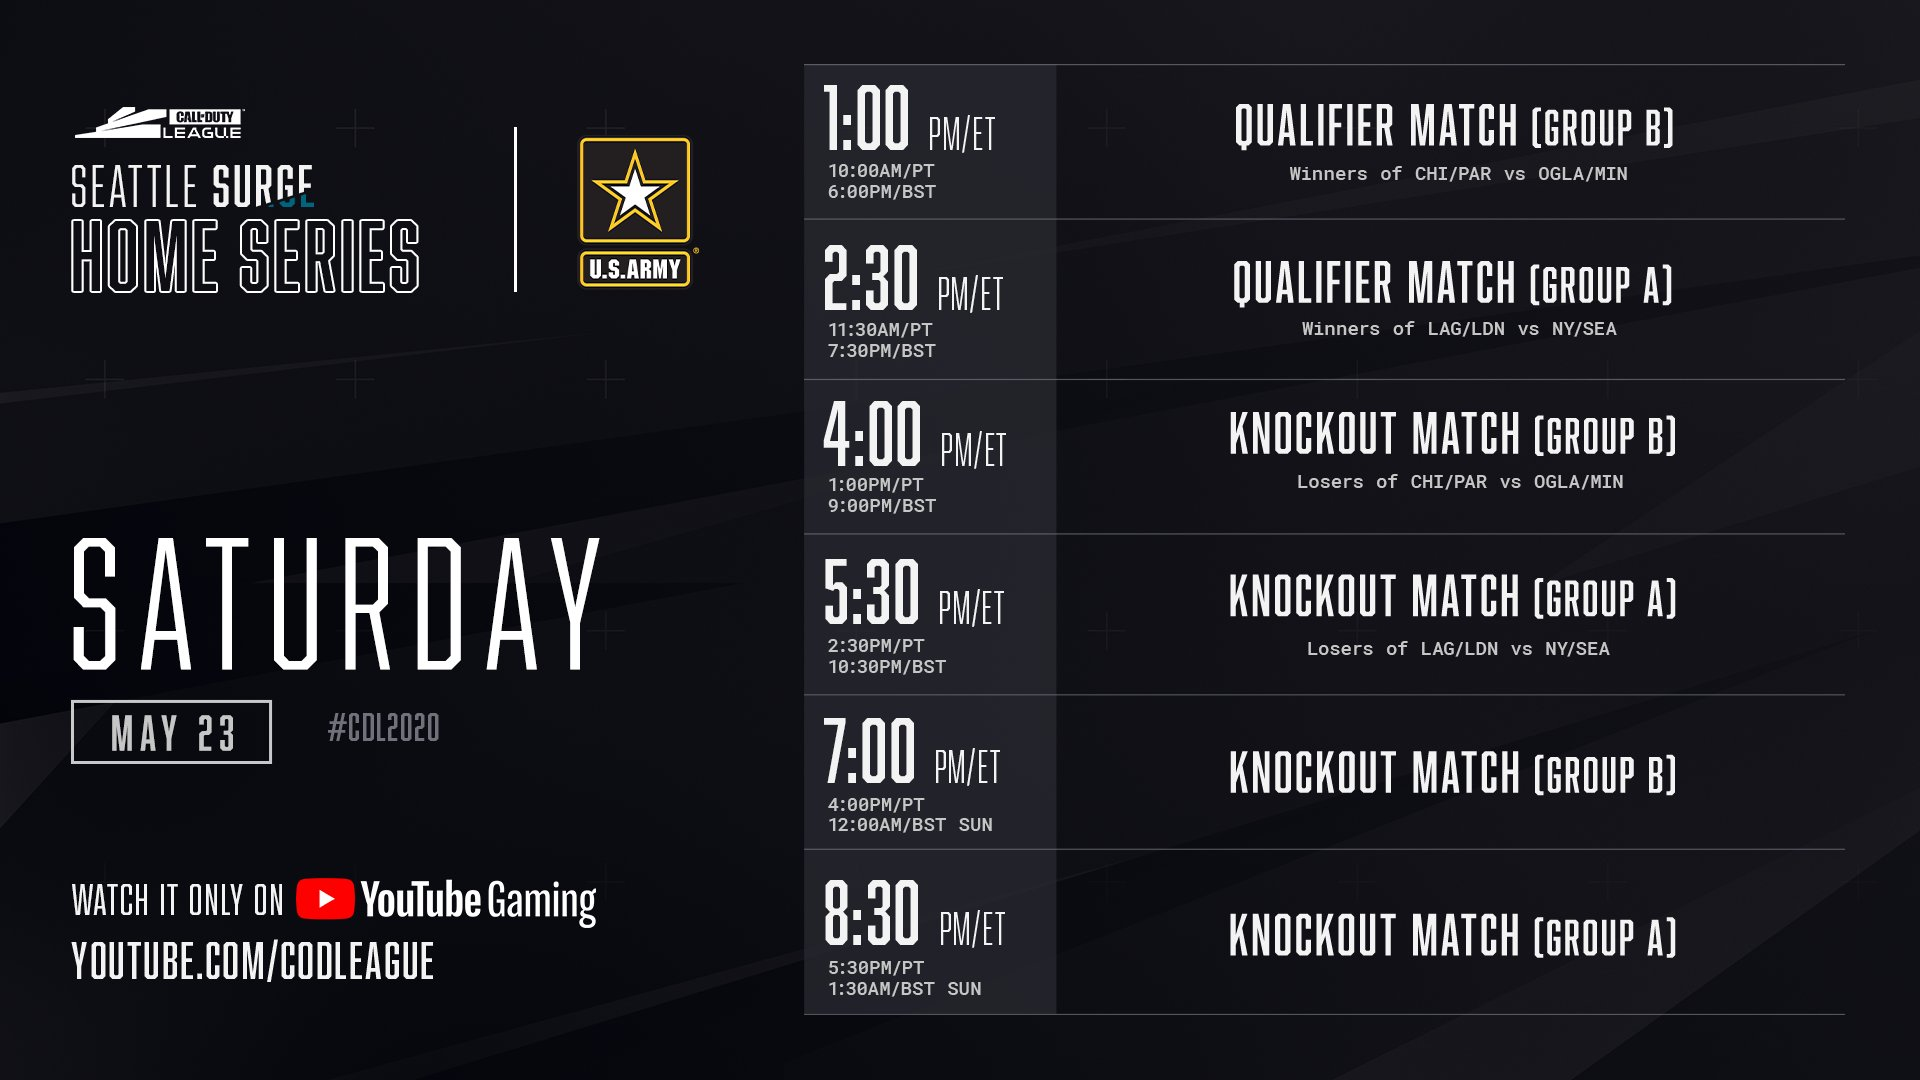 Call of Duty Seattle Surge Home Series Saturday Schedule 2020